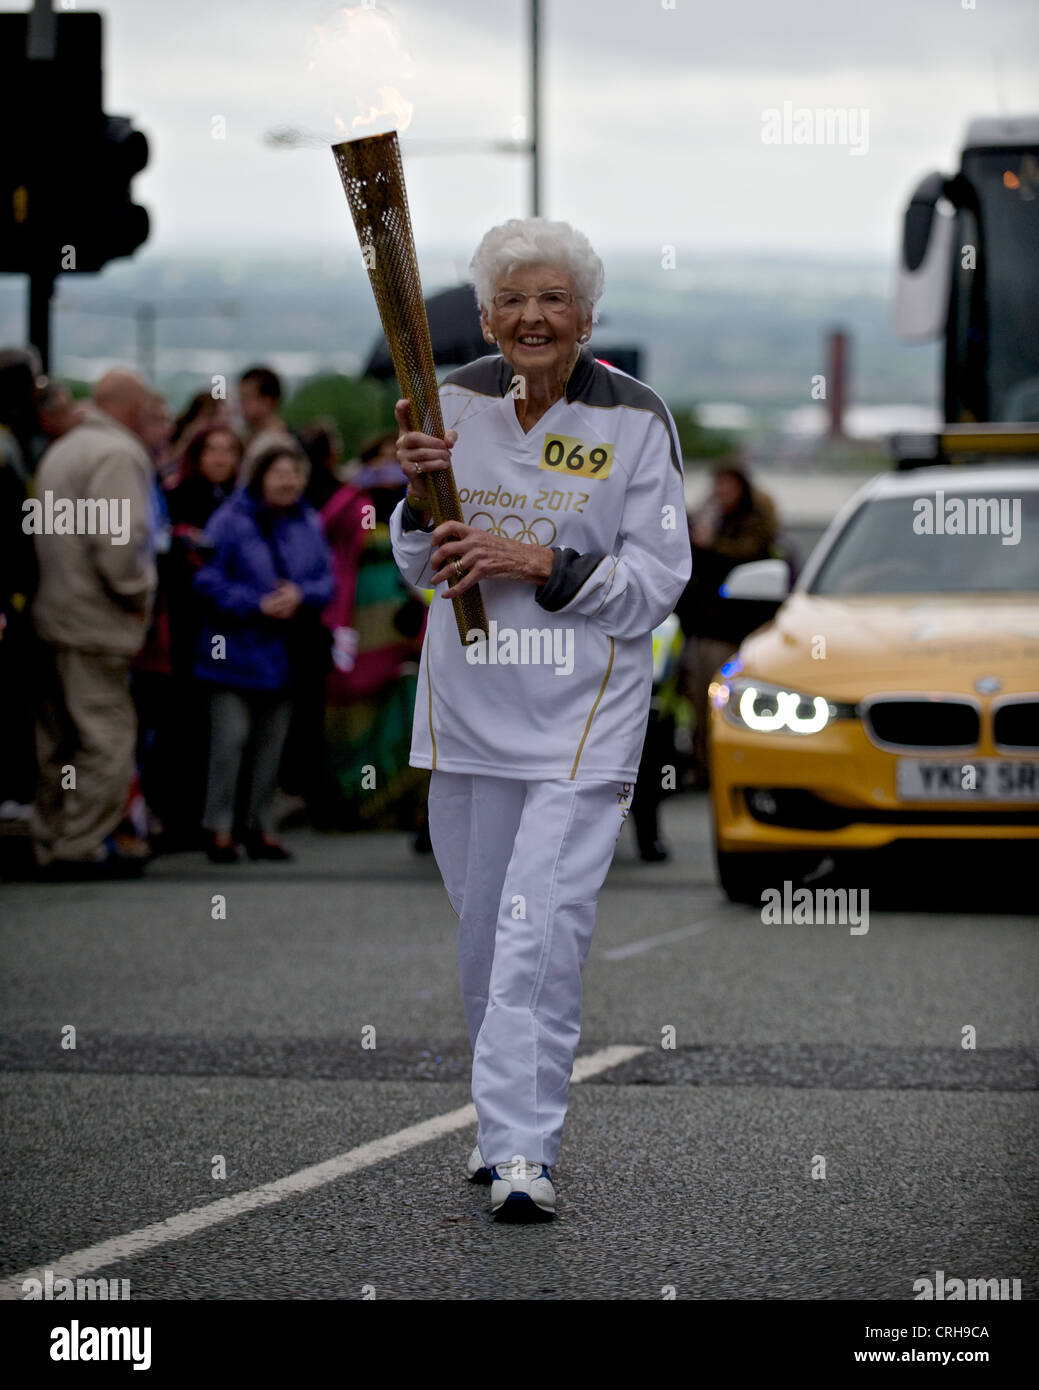 94yr old Thora Beddard, carries the Olympic flame through the town of Oldham as part of the torch relay. - Stock Image